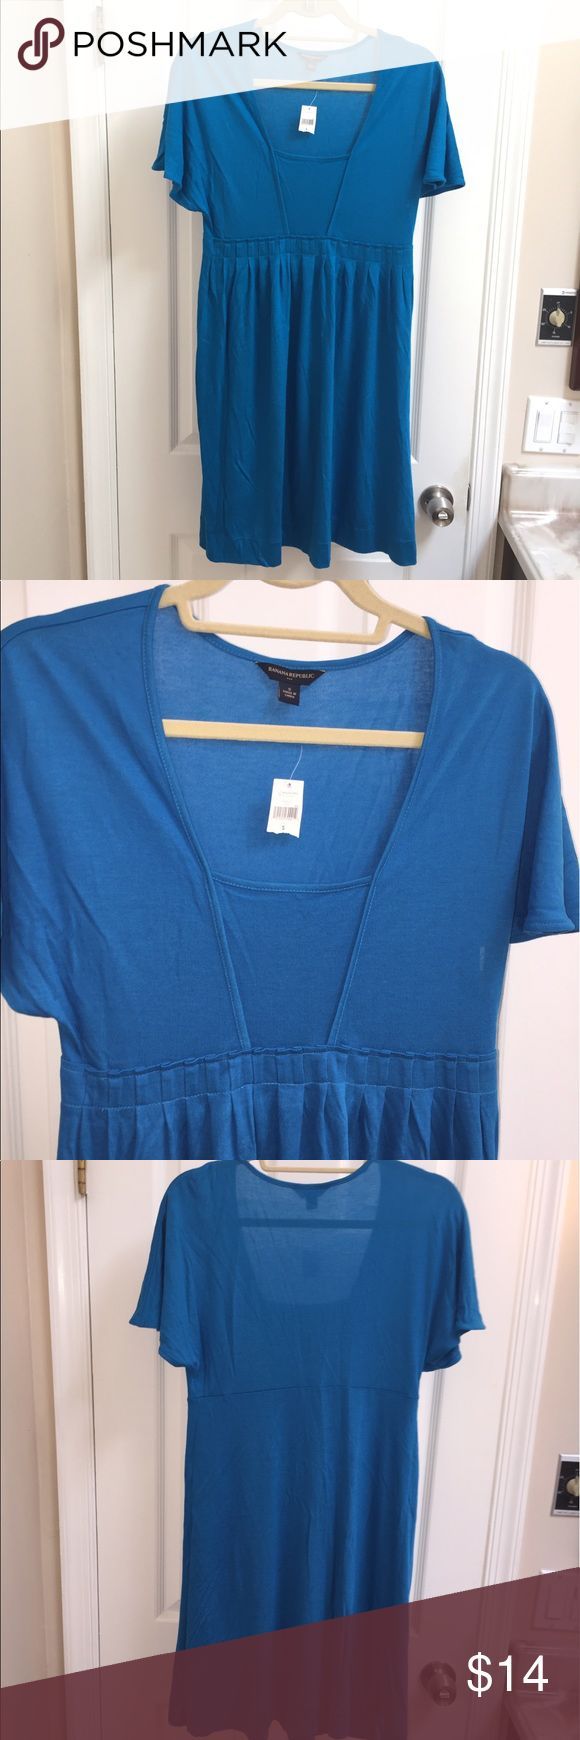 NWT Banana Republic dress New with tags, Banana Republics dress size small. In my opinion this dress runs a little big. Lightweight and somewhat sheer so may be best worn as a swimsuit coverup. 70% rayon, 30% lycocell. I had difficulty capturing the color and I feel it is a little bit more turquoise in person. Please feel free to ask any questions. Thanks for looking. Banana Republic Dresses